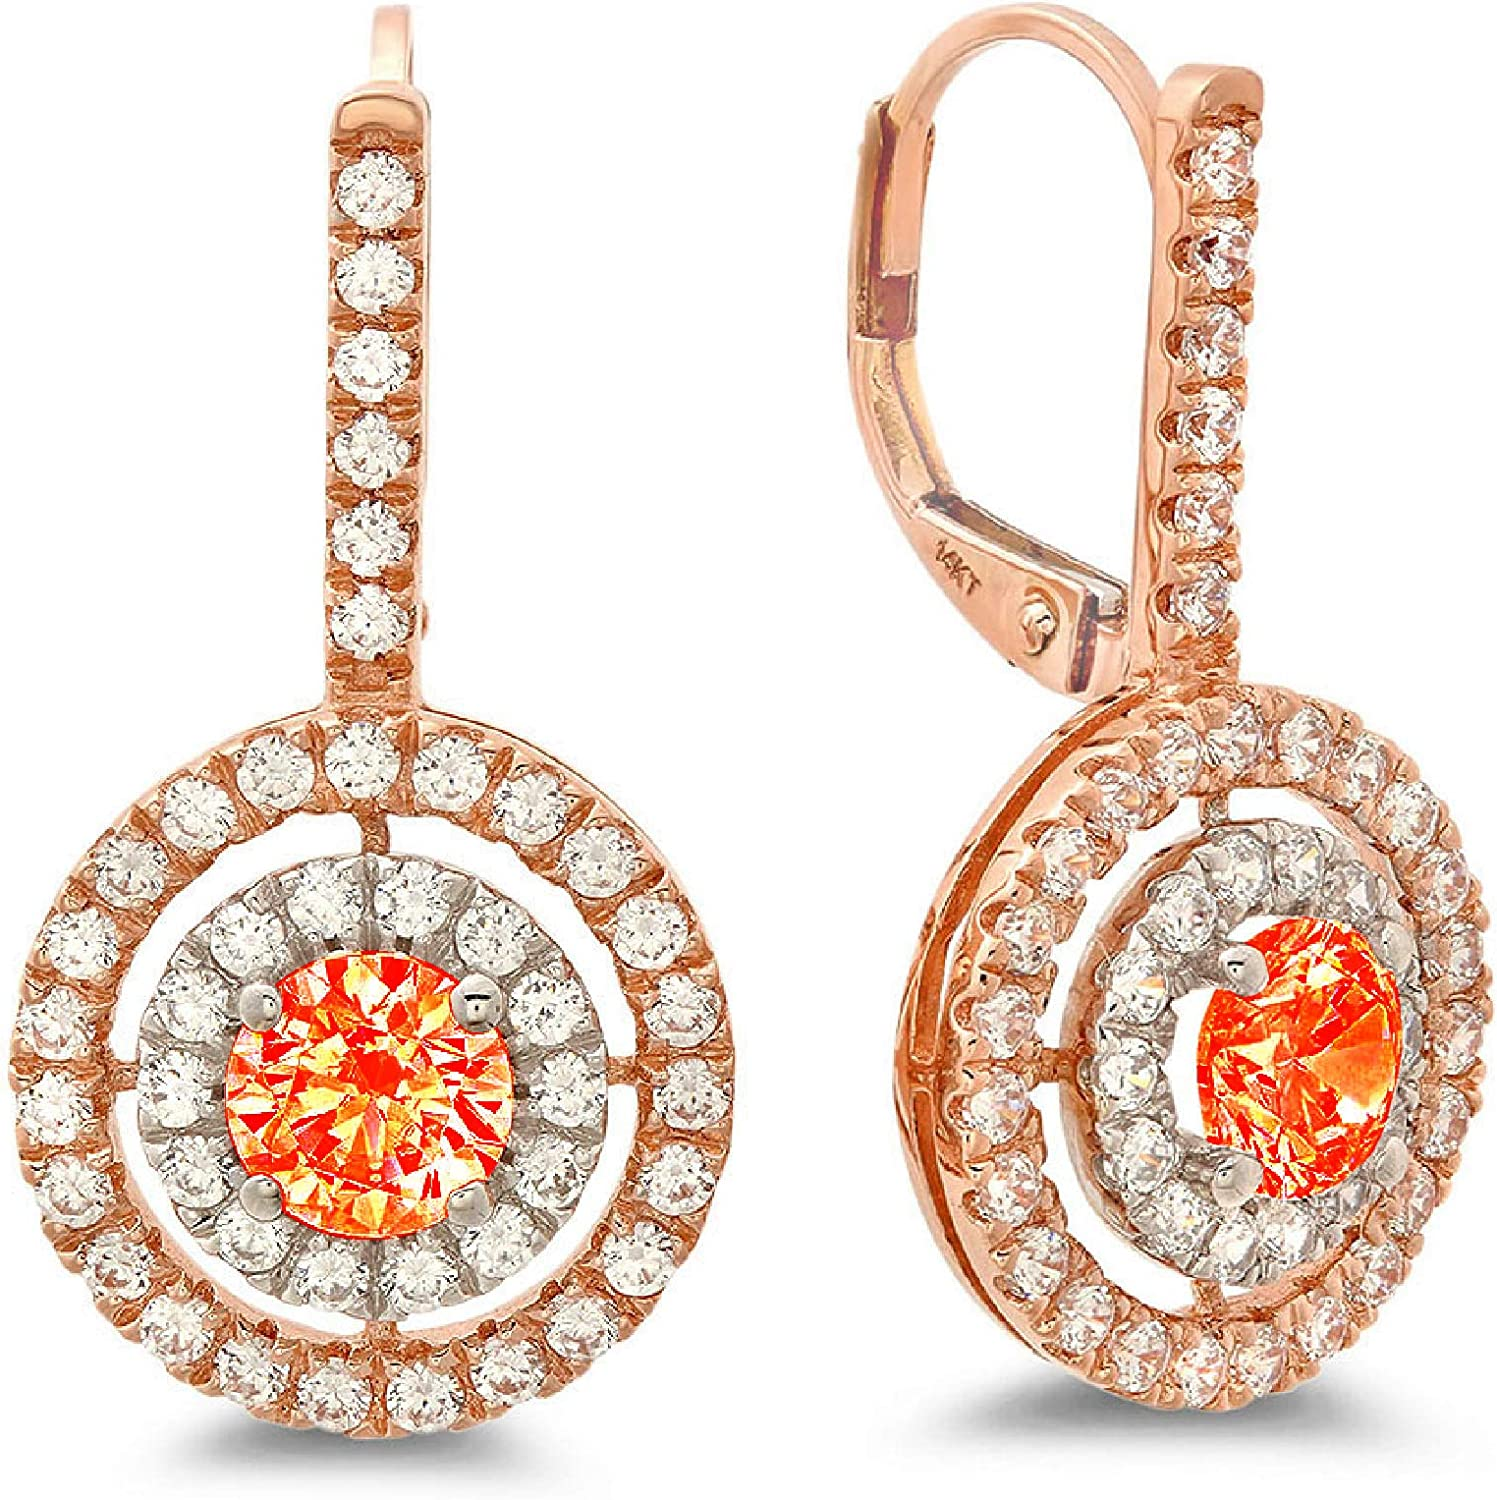 2.34cttw Round Cut ideal VVS1 Conflict Free Gemstone Double Halo Solitaire Genuine Red CZ Unisex Designer Lever back Drop Dangle Earrings Solid 14k 2tone Gold